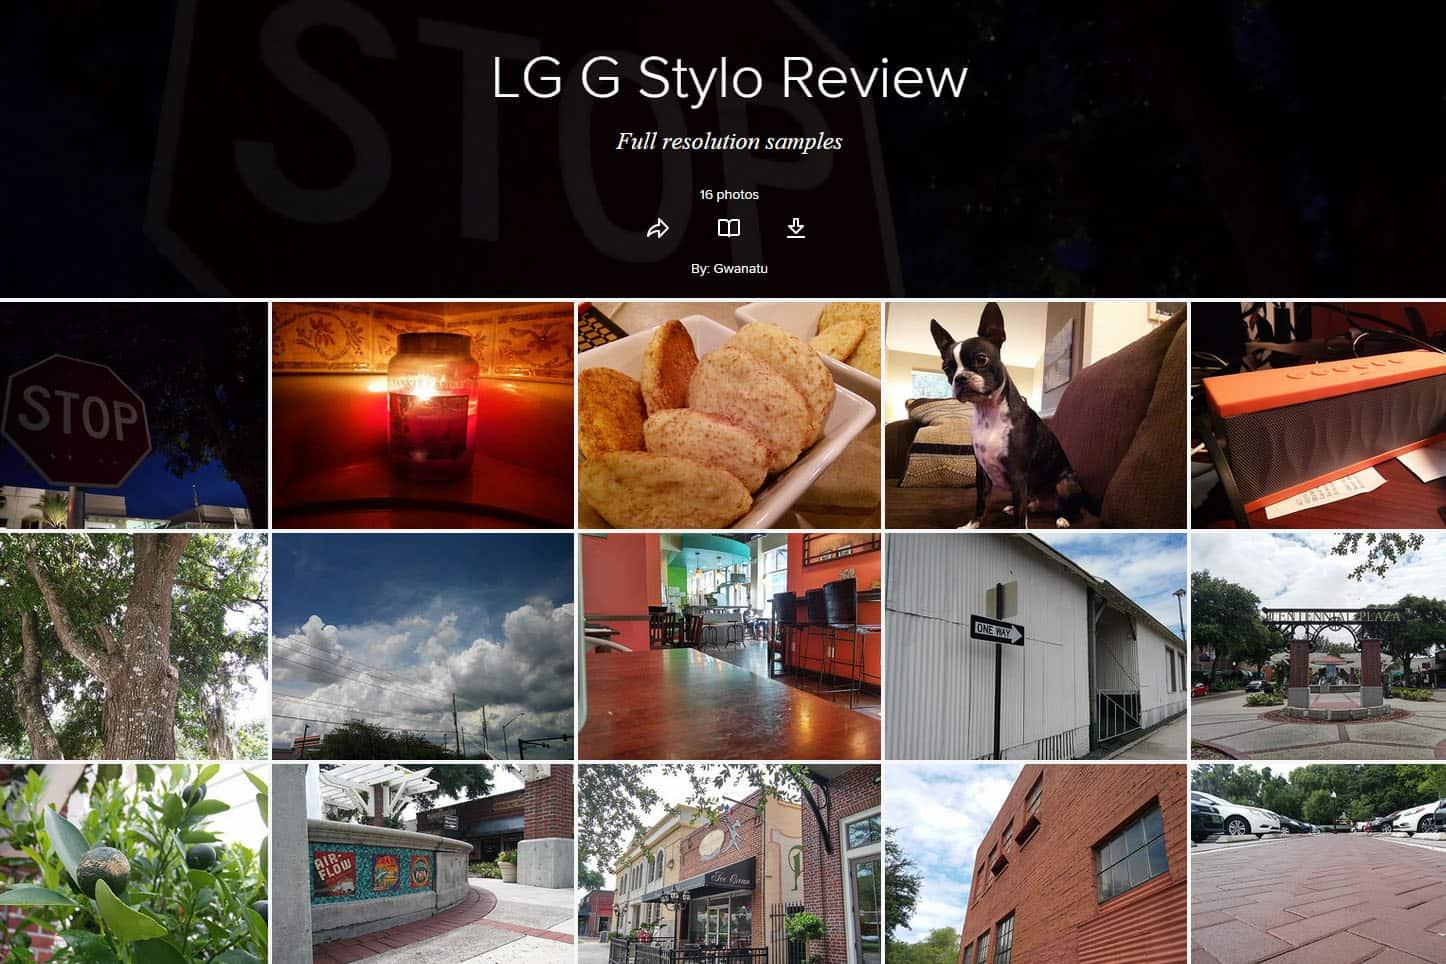 Lggstyloreviewpicturesflickr Lg G Stylo: How To Block Phone Numbers